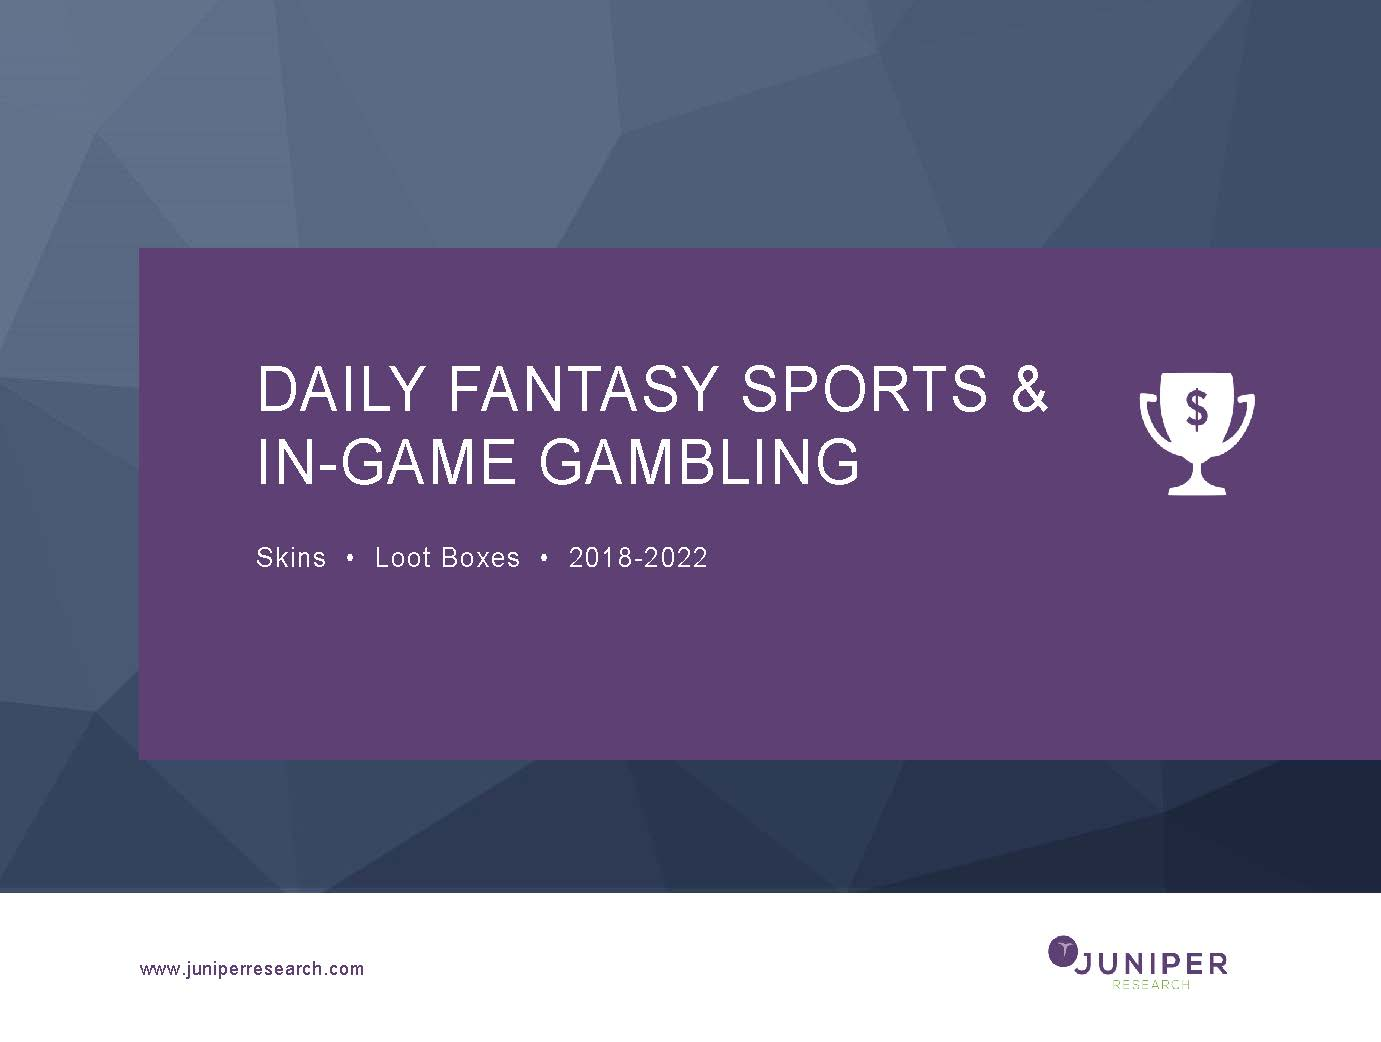 Daily Fantasy Sports & In-Game Gambling